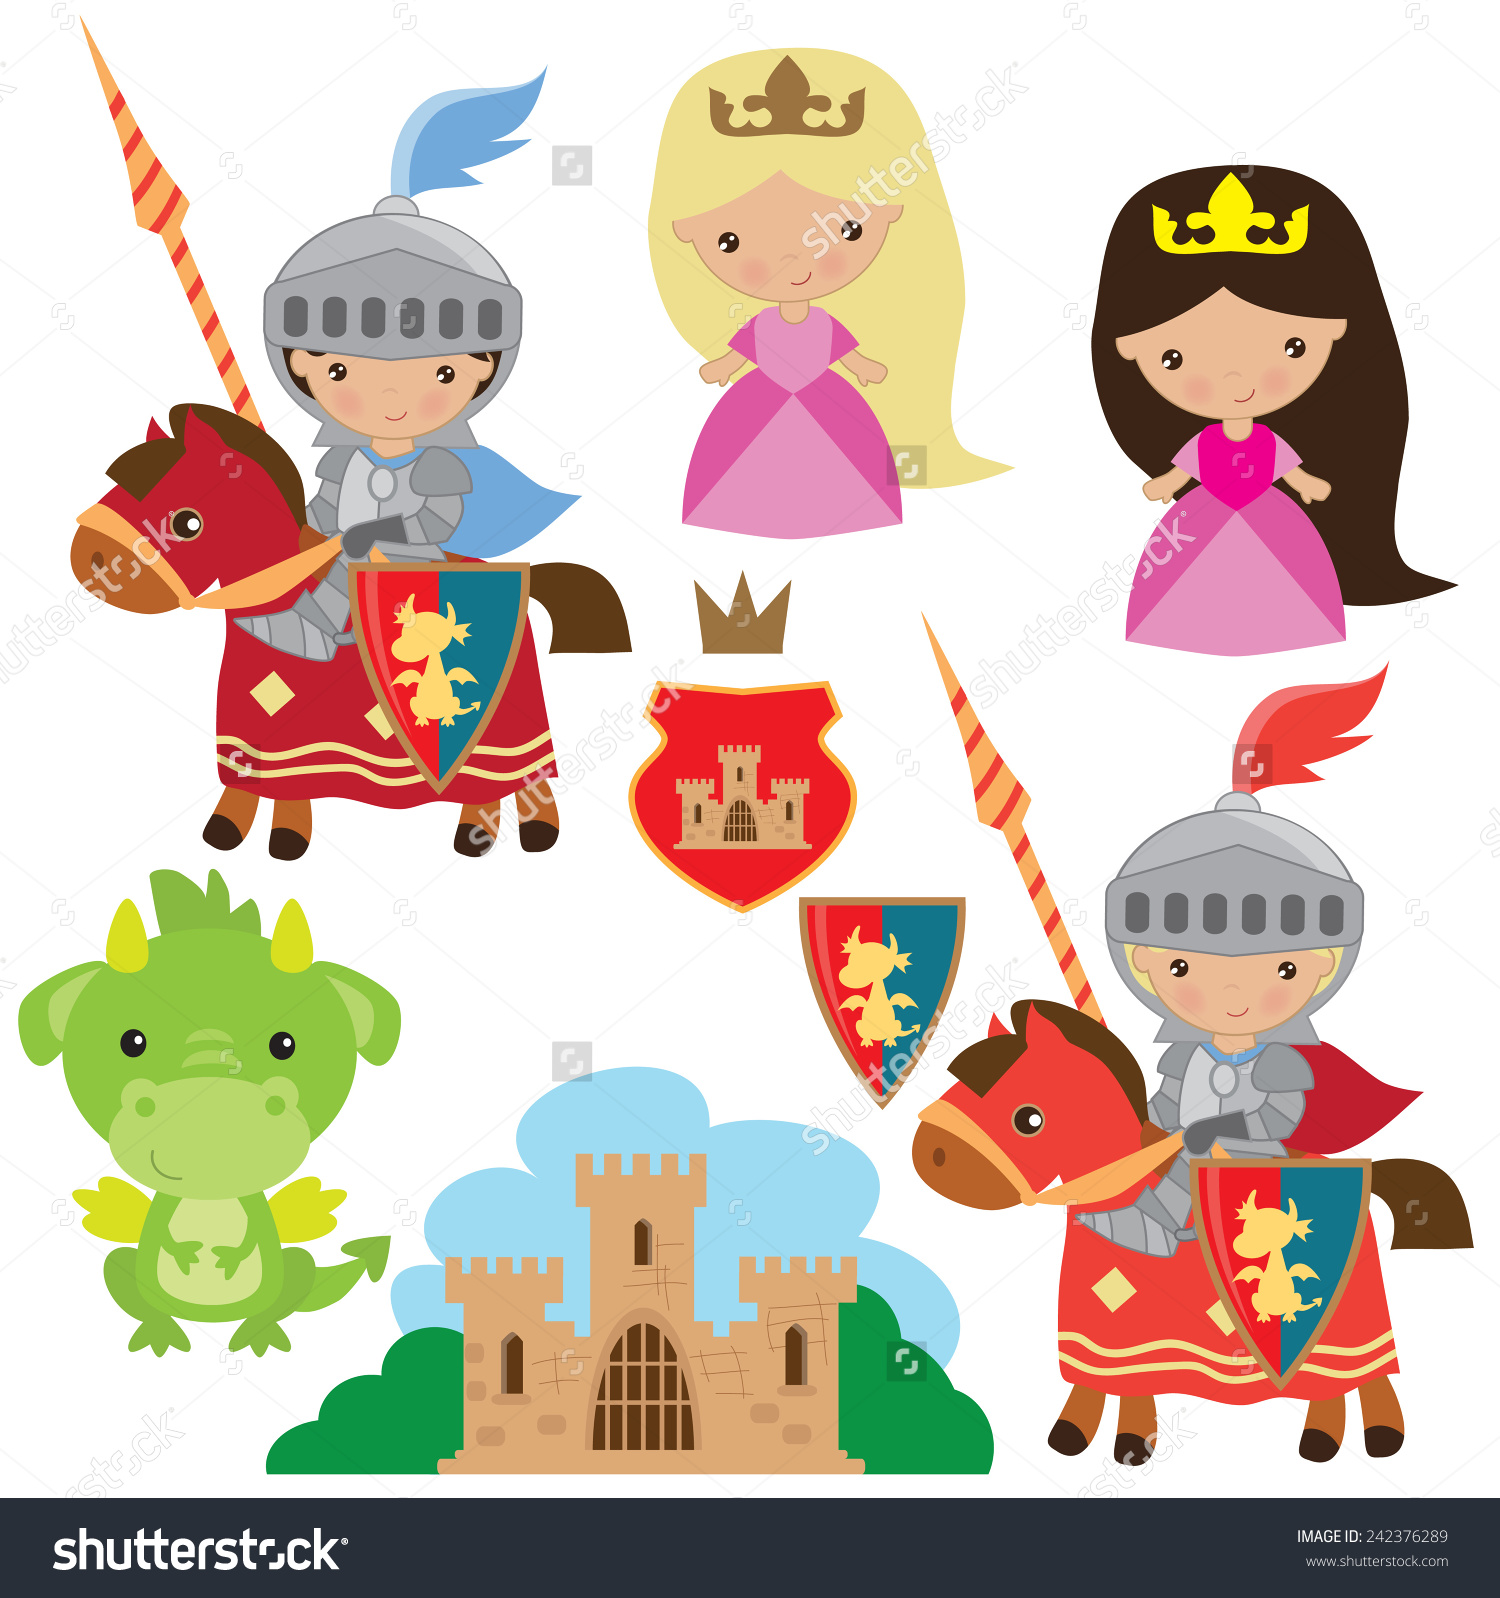 Knight Princess Dragon Vector Illustration Stock Vector 242376289.